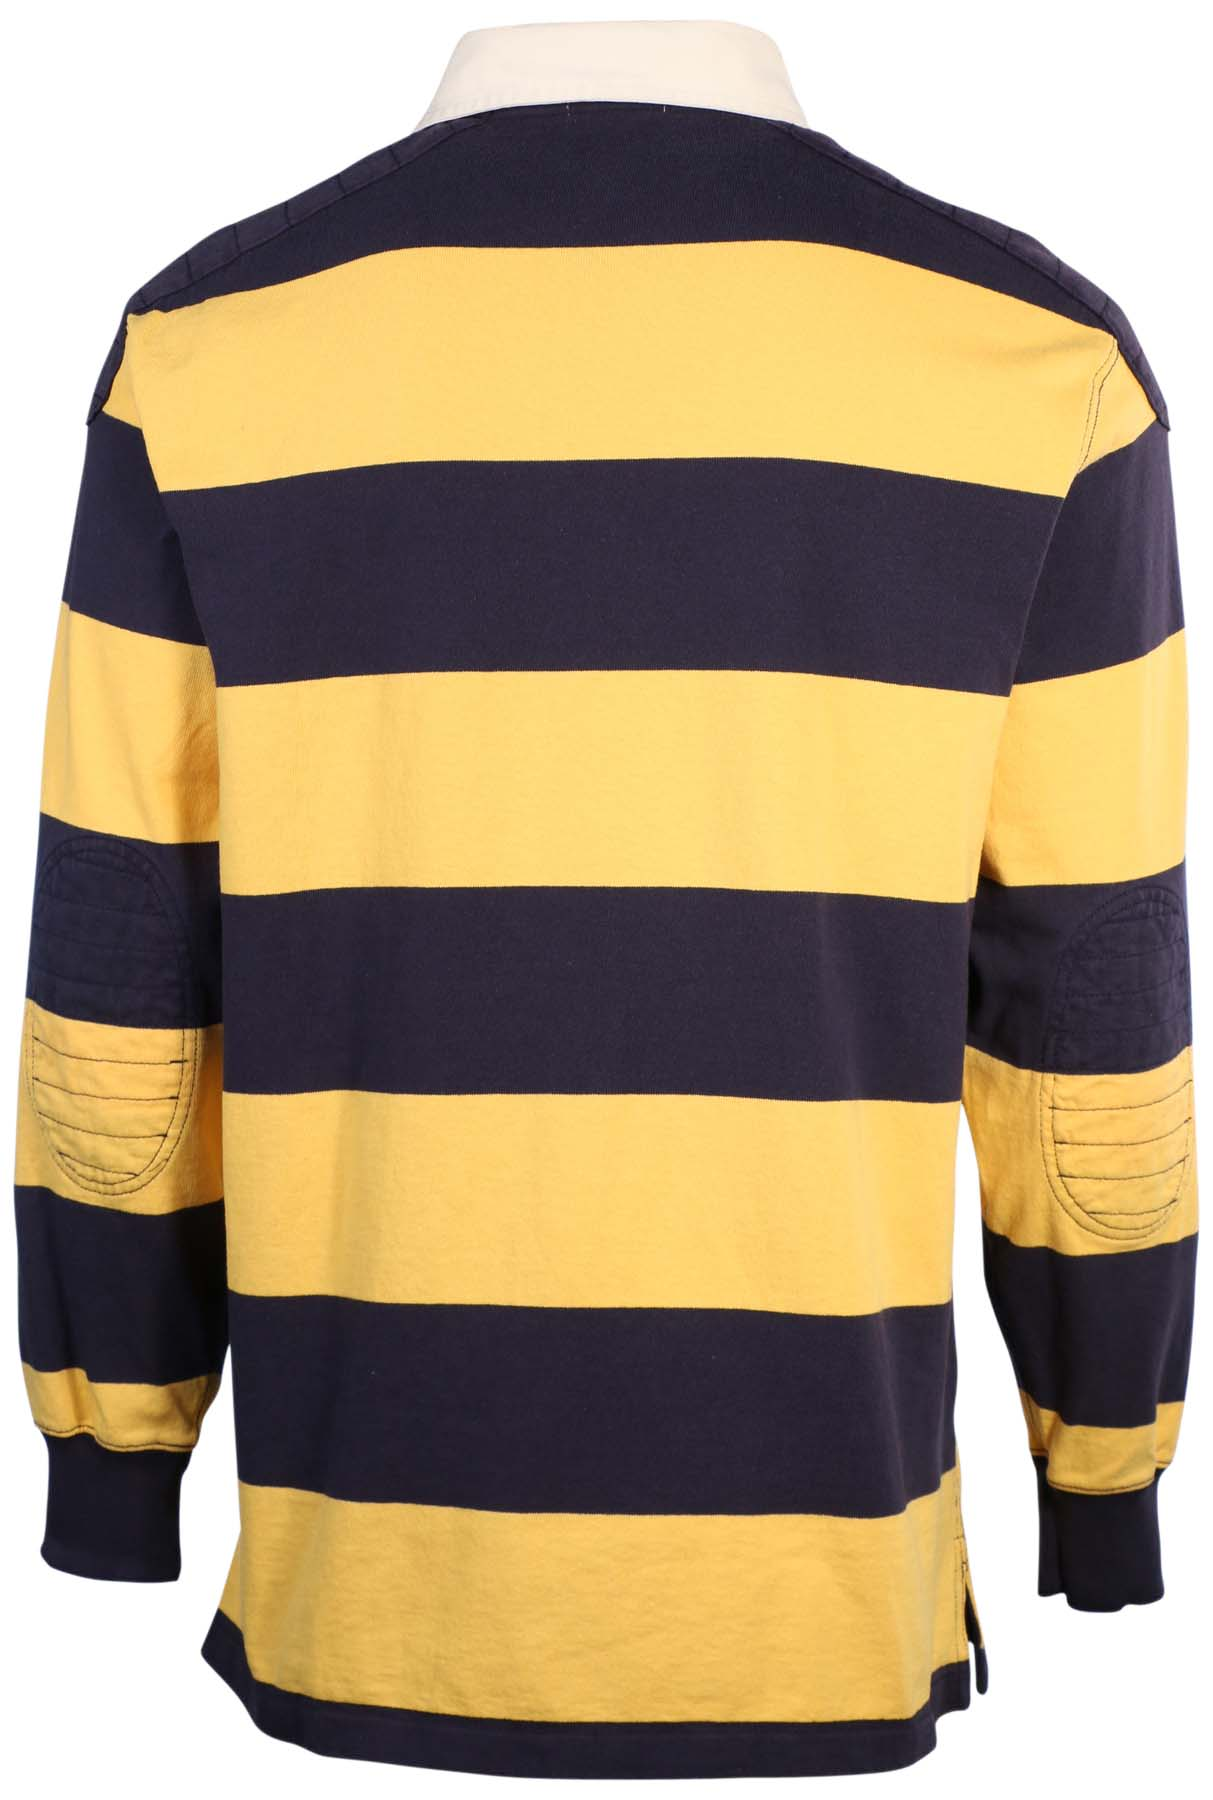 Polo ralph lauren men 39 s big tall striped rugby shirt ebay for Big and tall polo rugby shirts